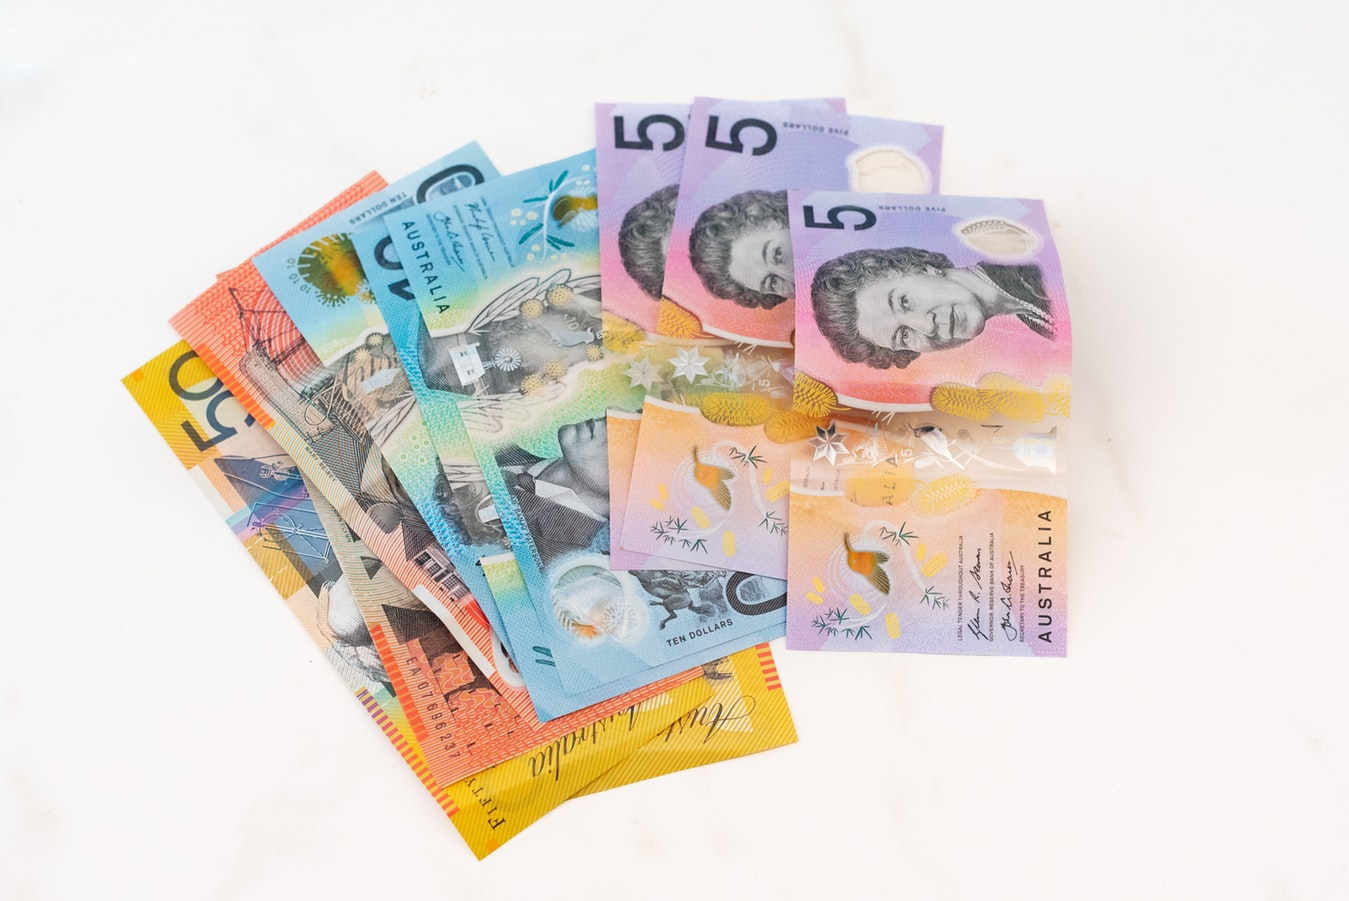 Australian bank notes on a white surface